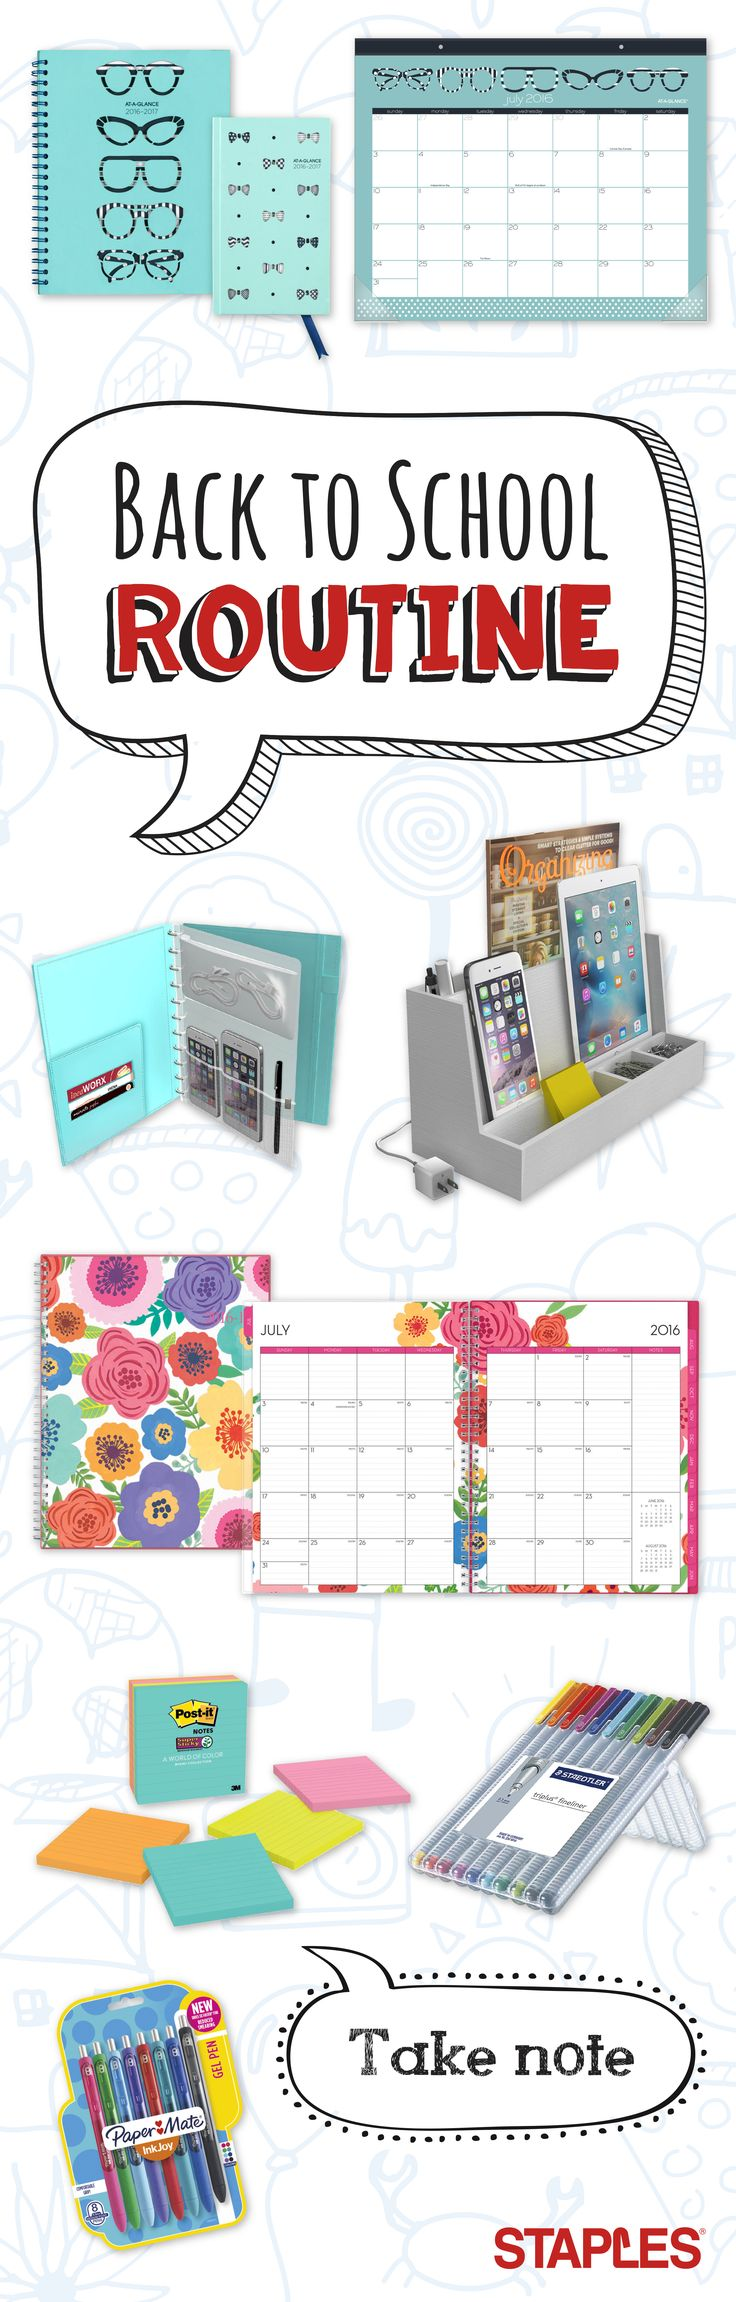 Sending the kids back to school is anything but routine with these stylish planners, calendars and desk accessories. Just perfect for moms who put organization on the top of their list.